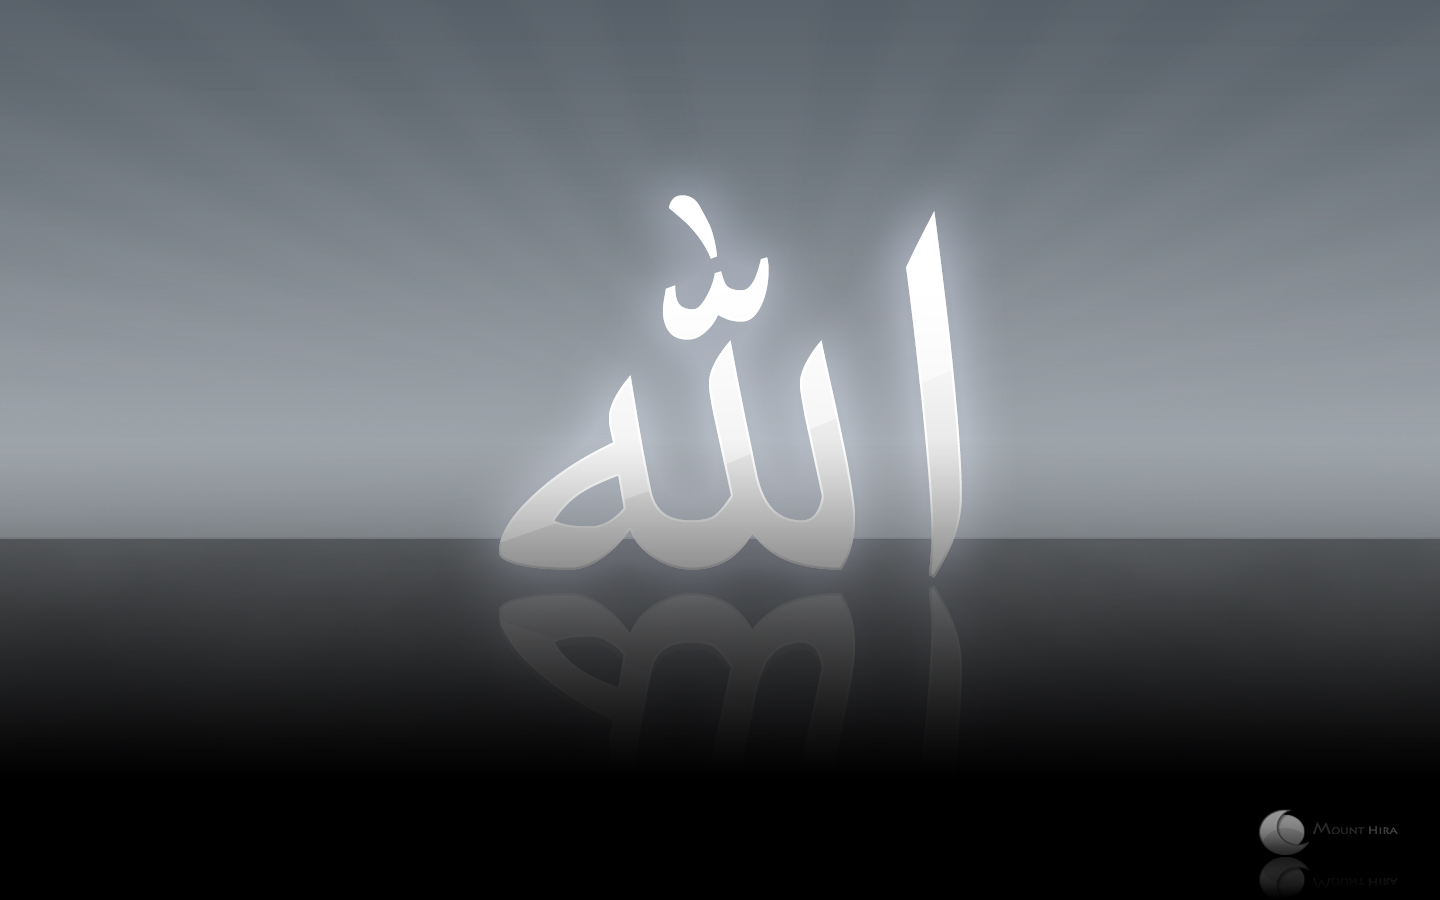 S Name Wallpaper Hd Download: Computer Wallpapers: Latest Islamic Pictures